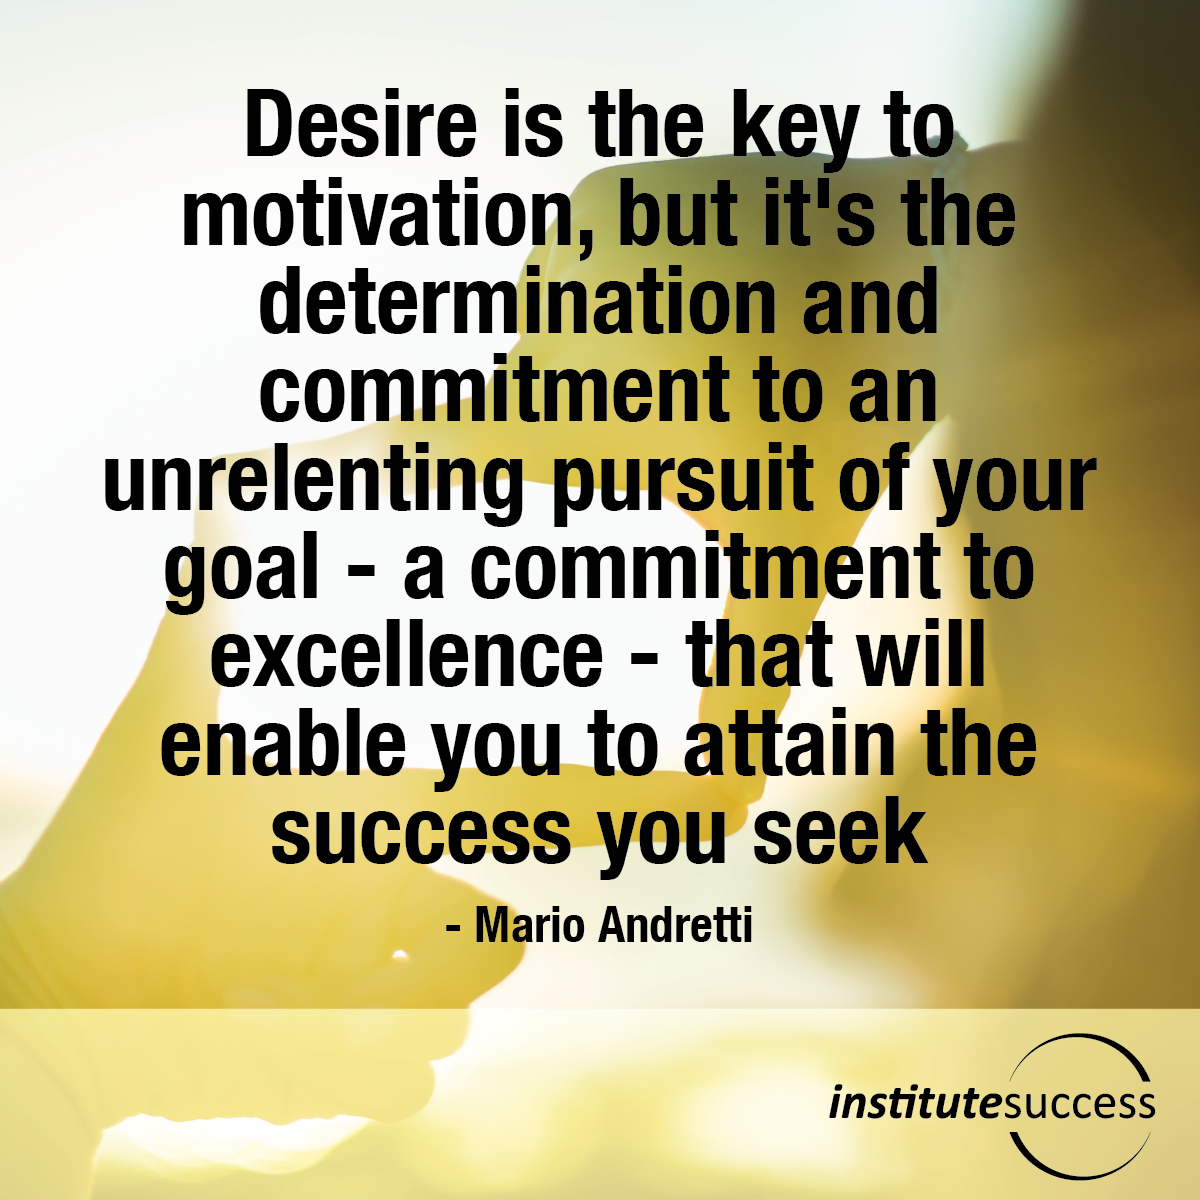 Desire is the key to motivation, but it's the determination and commitment to an unrelenting pursuit of your goal – a commitment to excellence – that will enable you to attain the success you seek – Mario Andretti